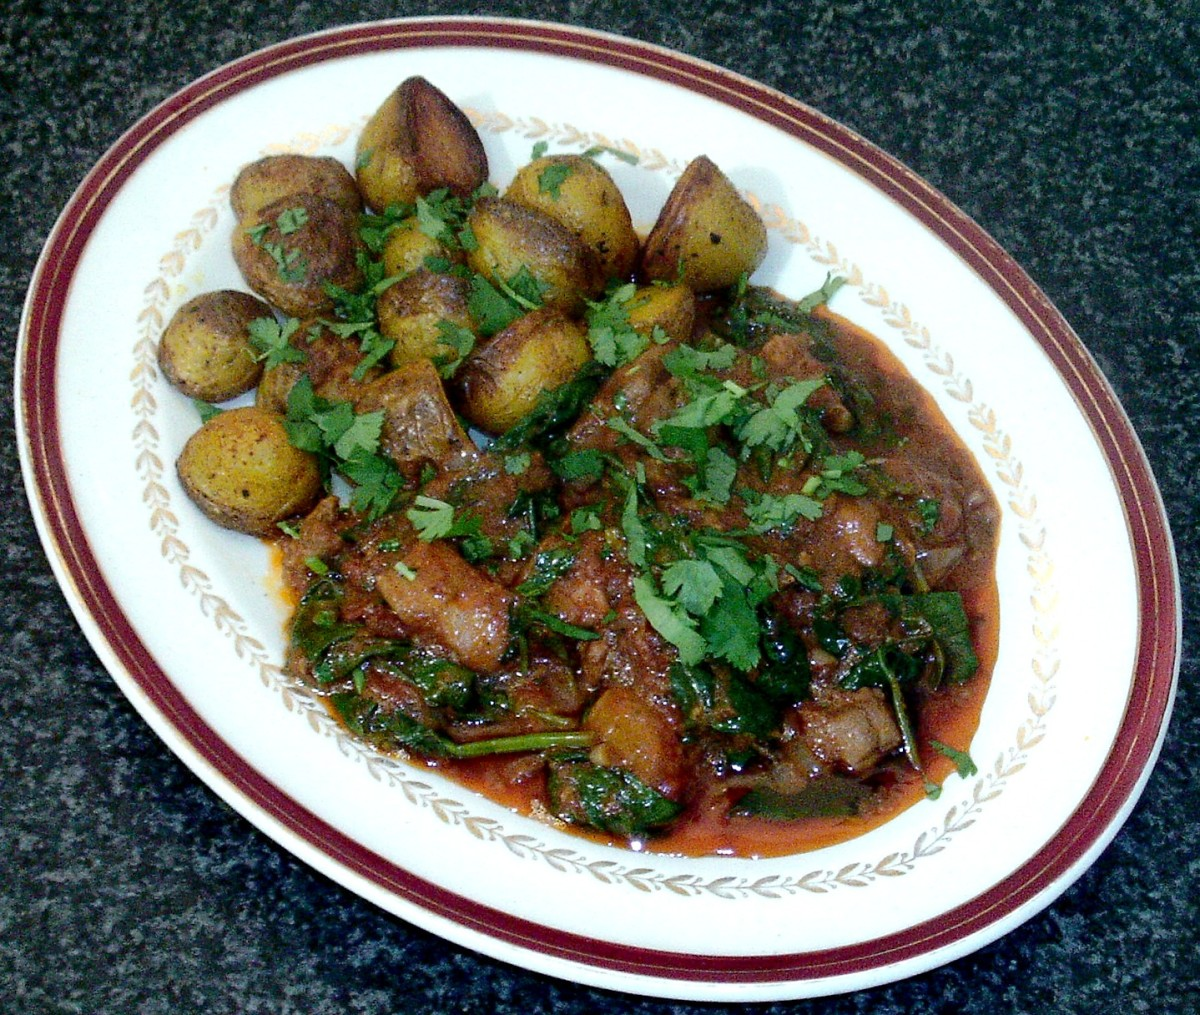 Spicy chicken and spinach curry is served with turmeric spiced roast potatoes